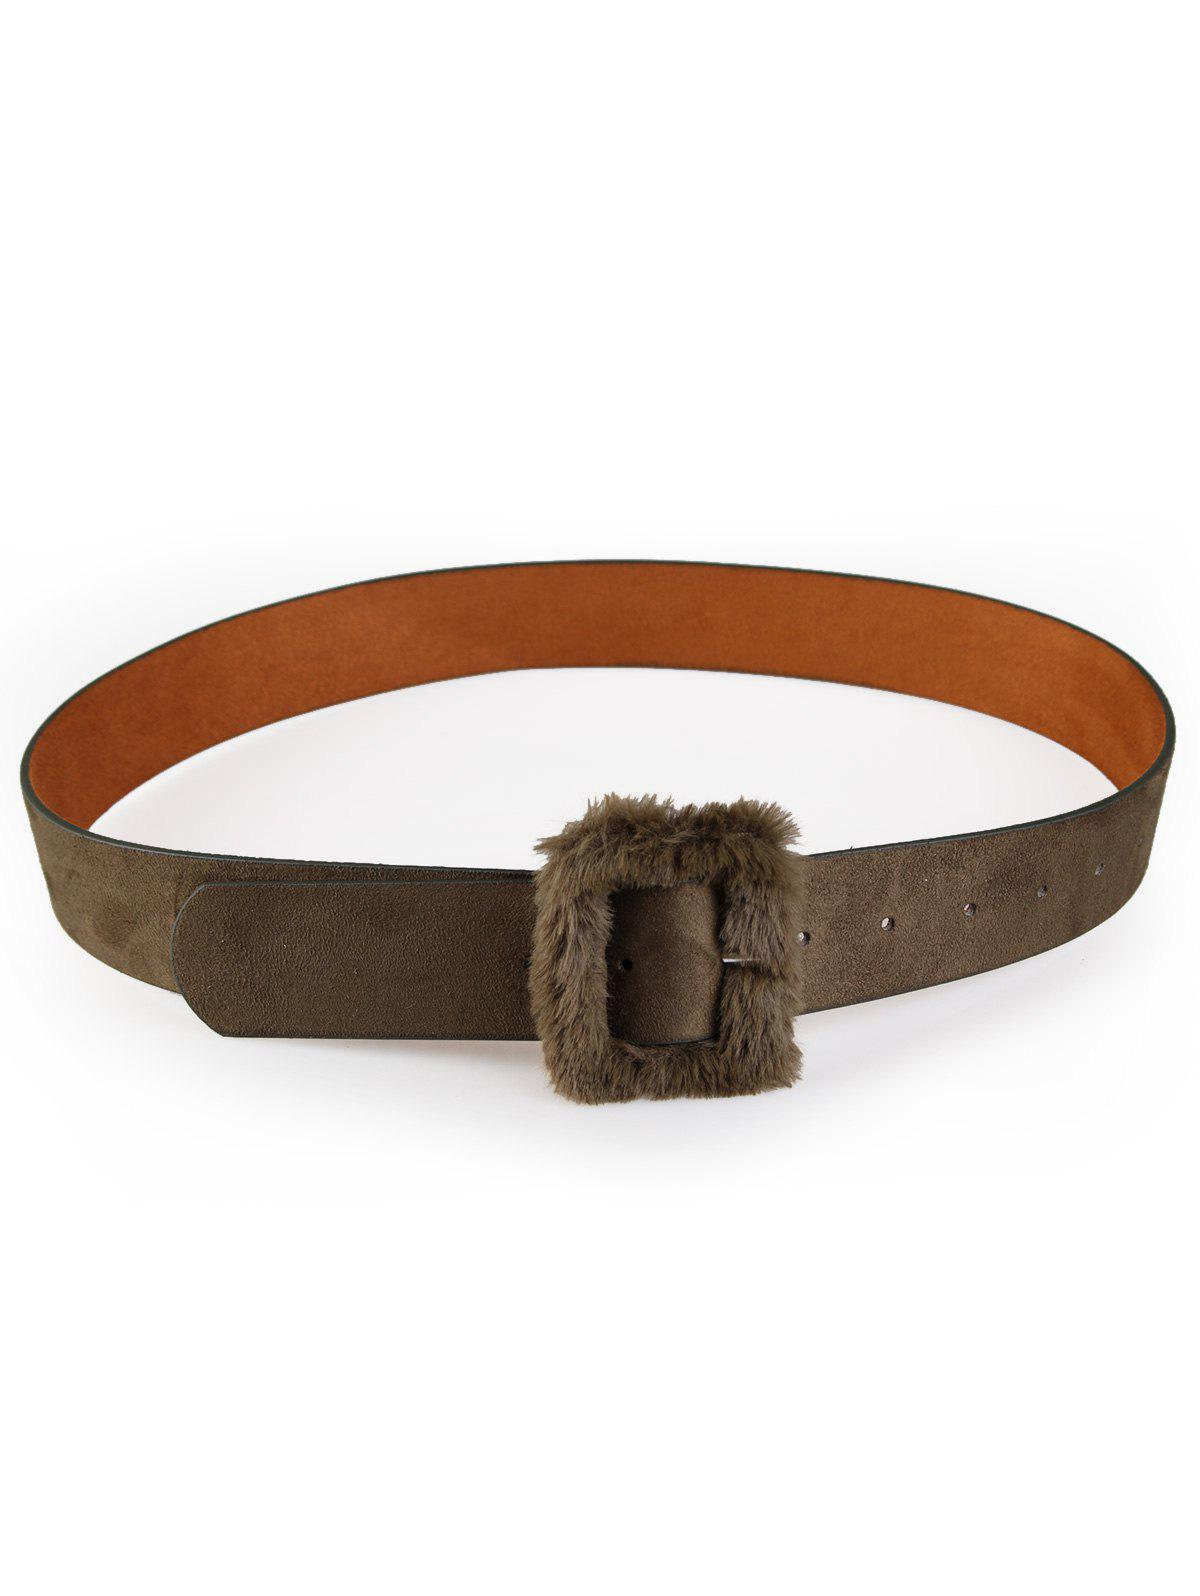 Cute Furry Buckle Decorated Faux Leather Waist Belt - ARMY GREEN